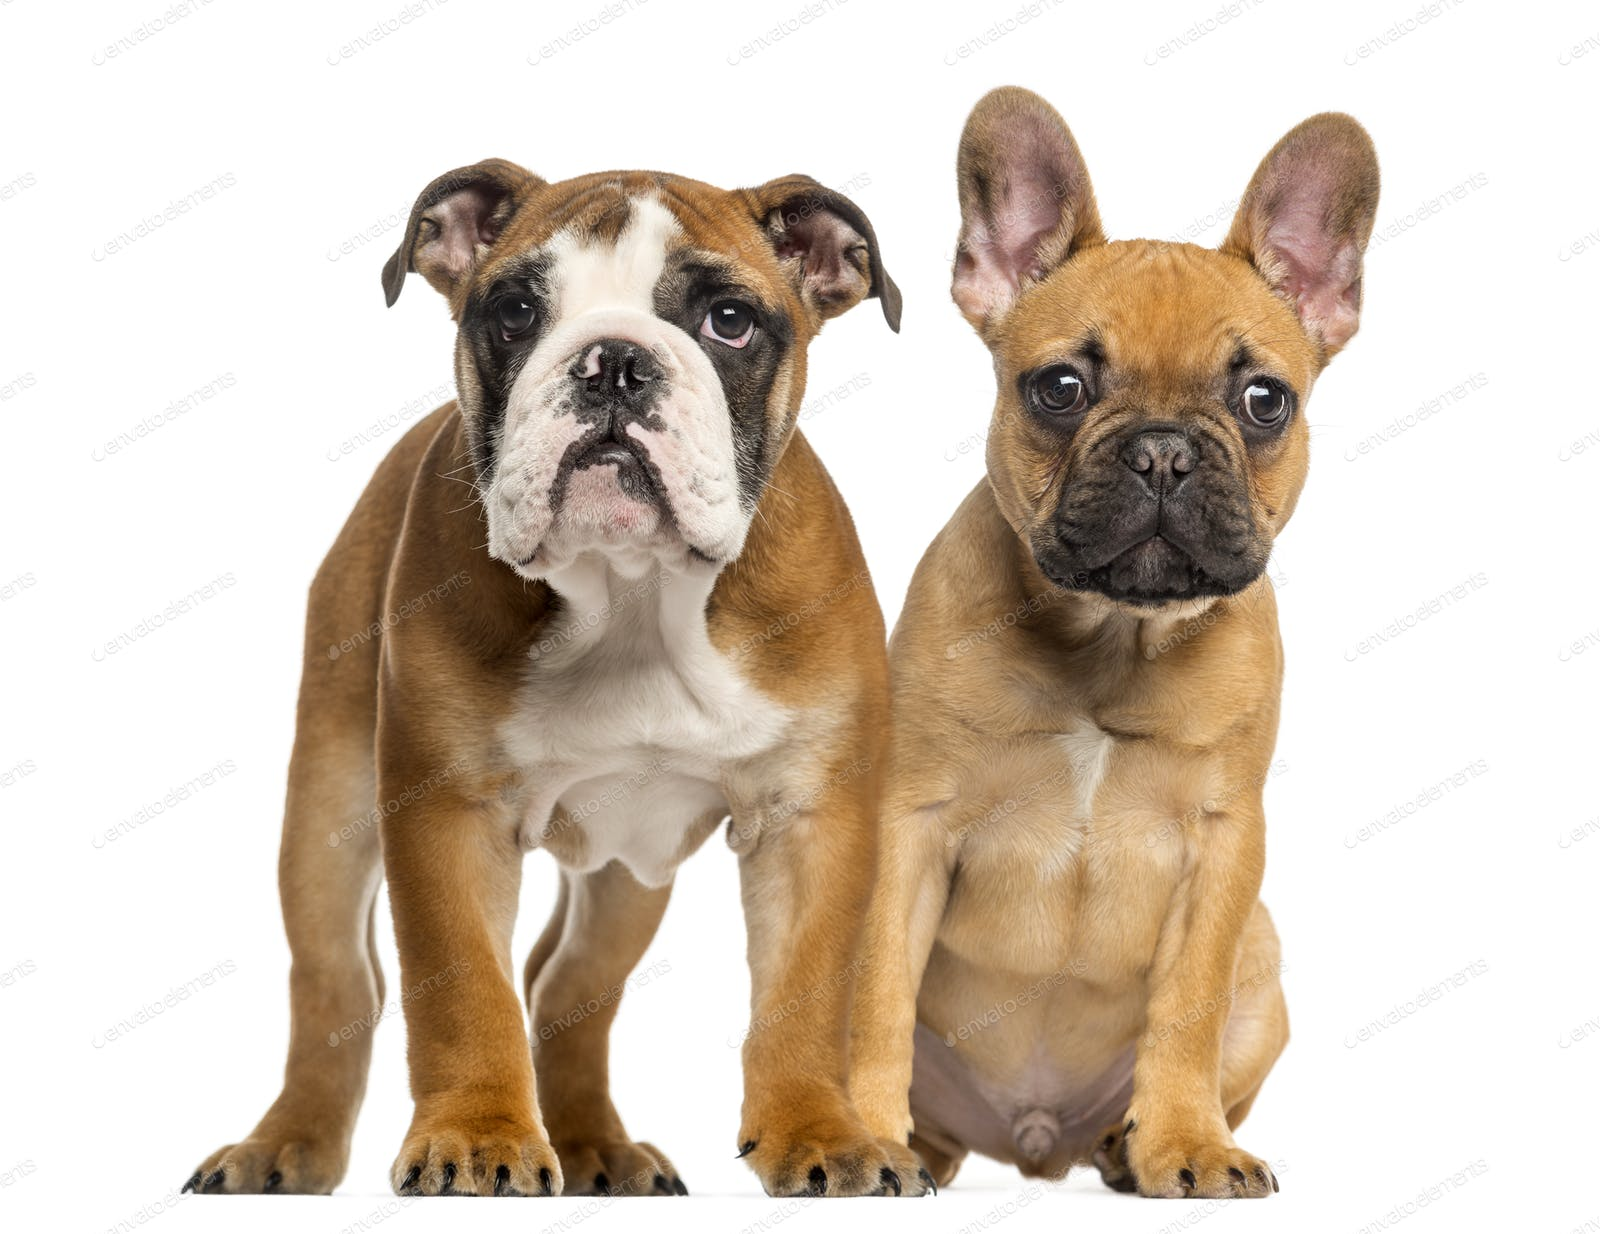 English Bulldog Puppy And French Bulldog Puppies Next To Each Other Isolated On White Photo By Lifeonwhite On Envato Elements